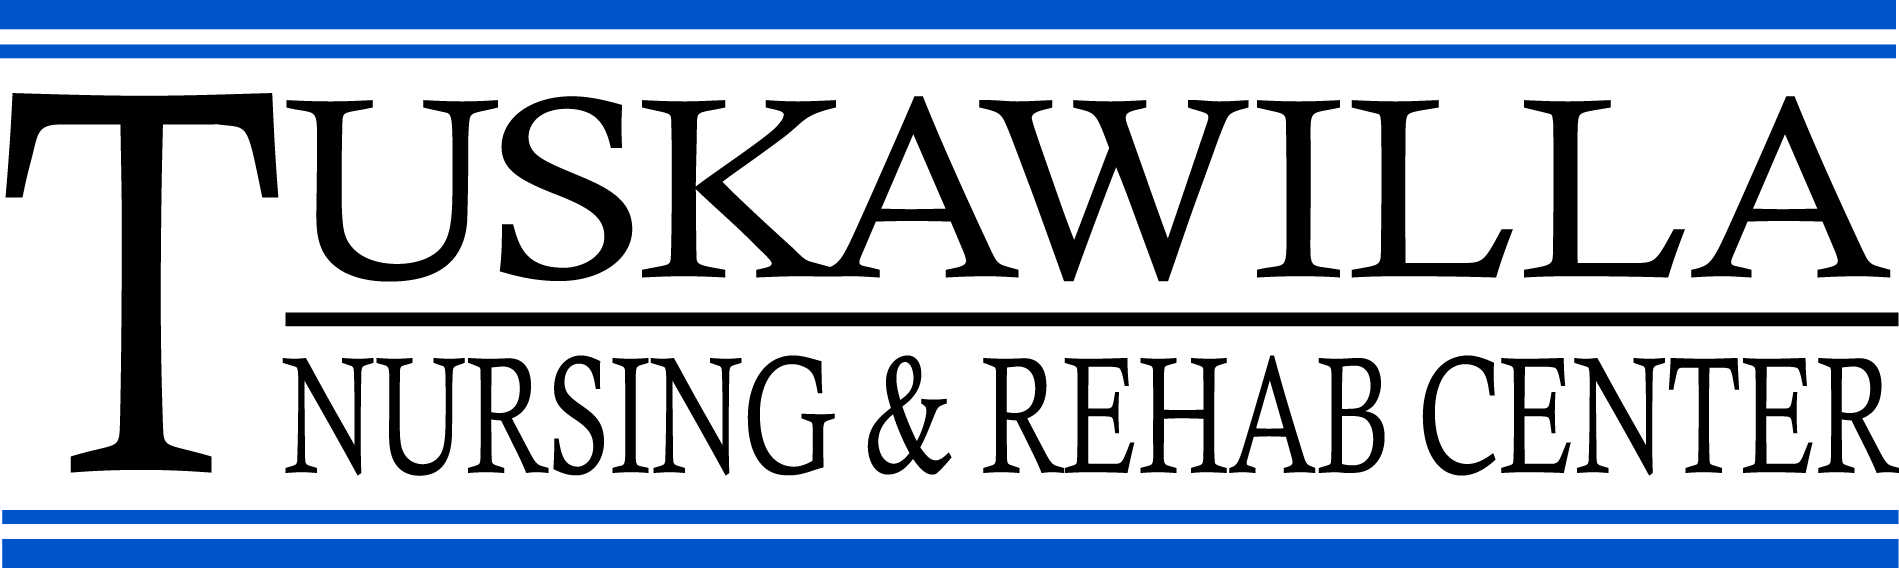 Tuskawilla Nursing and Rehab Center logo